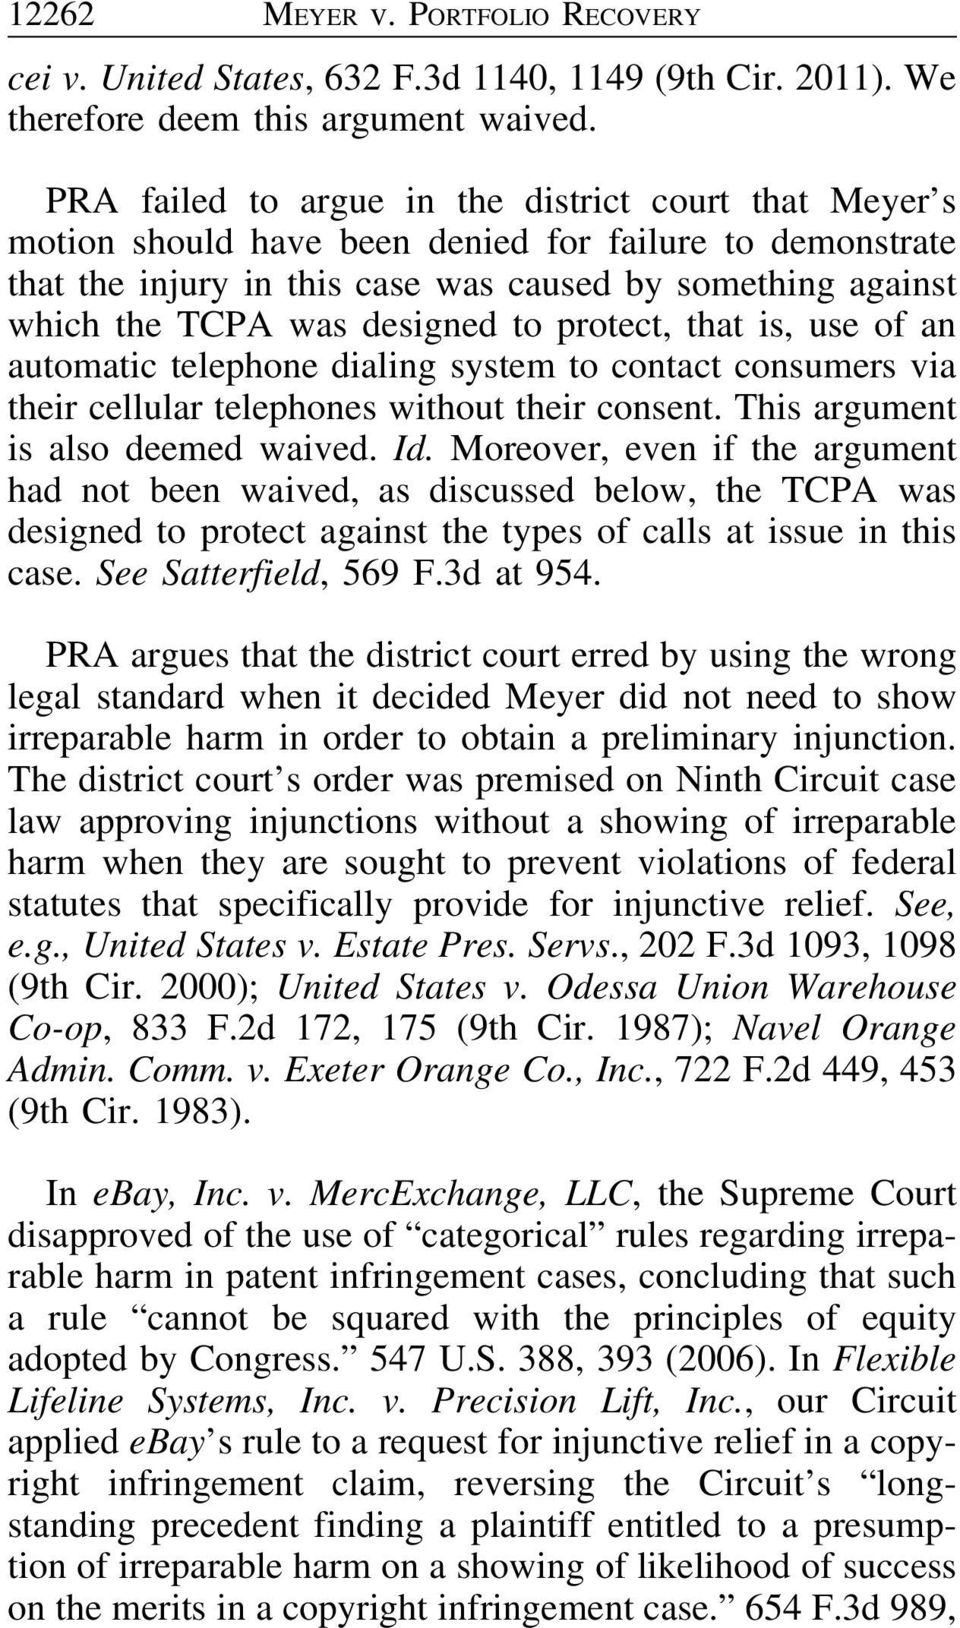 designed to protect, that is, use of an automatic telephone dialing system to contact consumers via their cellular telephones without their consent. This argument is also deemed waived. Id.